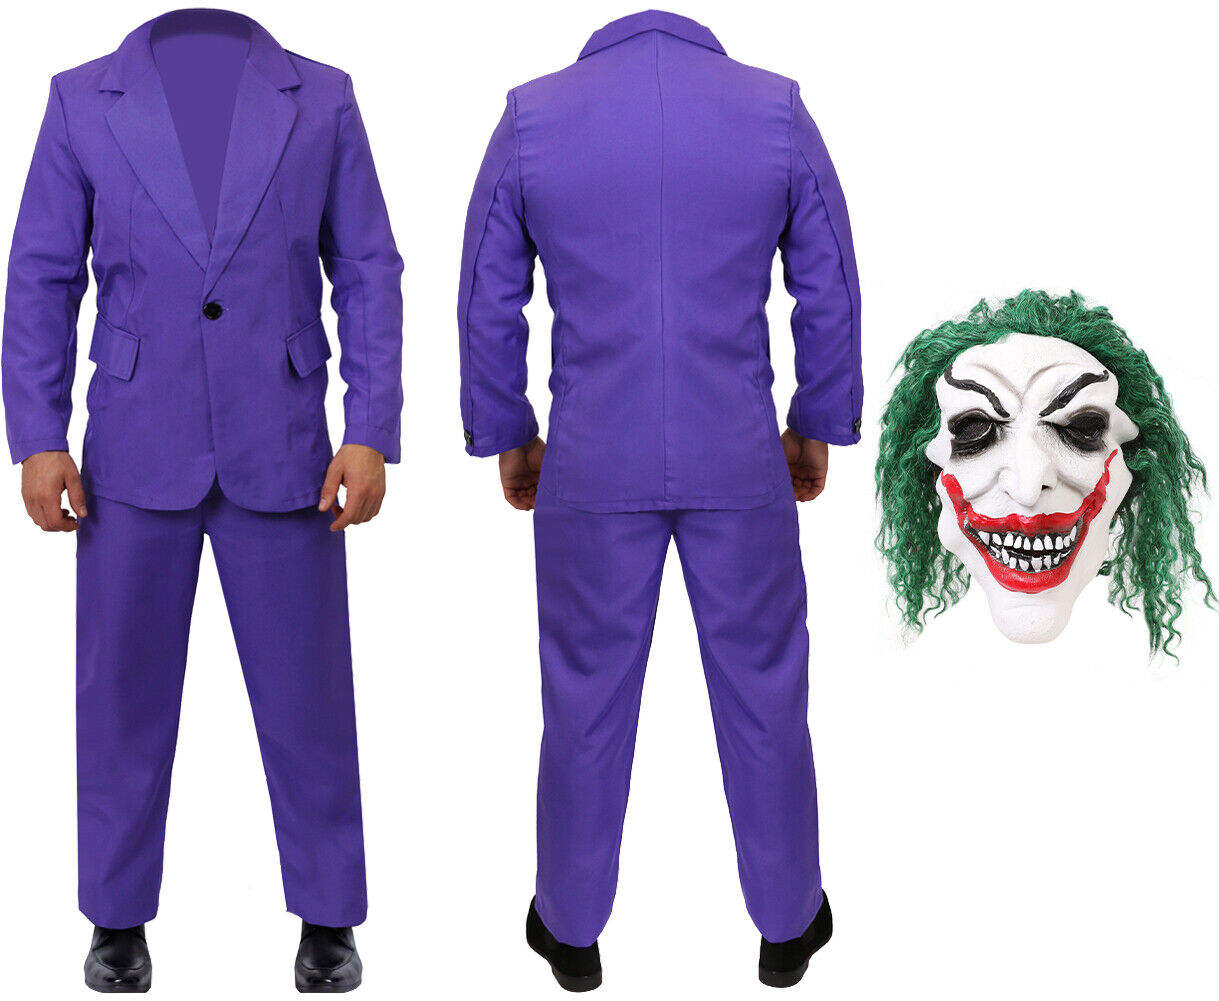 BURGUNDY SUIT HALLOWEEN COSTUME ADULTS CLOWN FILM MOVIE OUTFIT 2019 FANCY DRESS